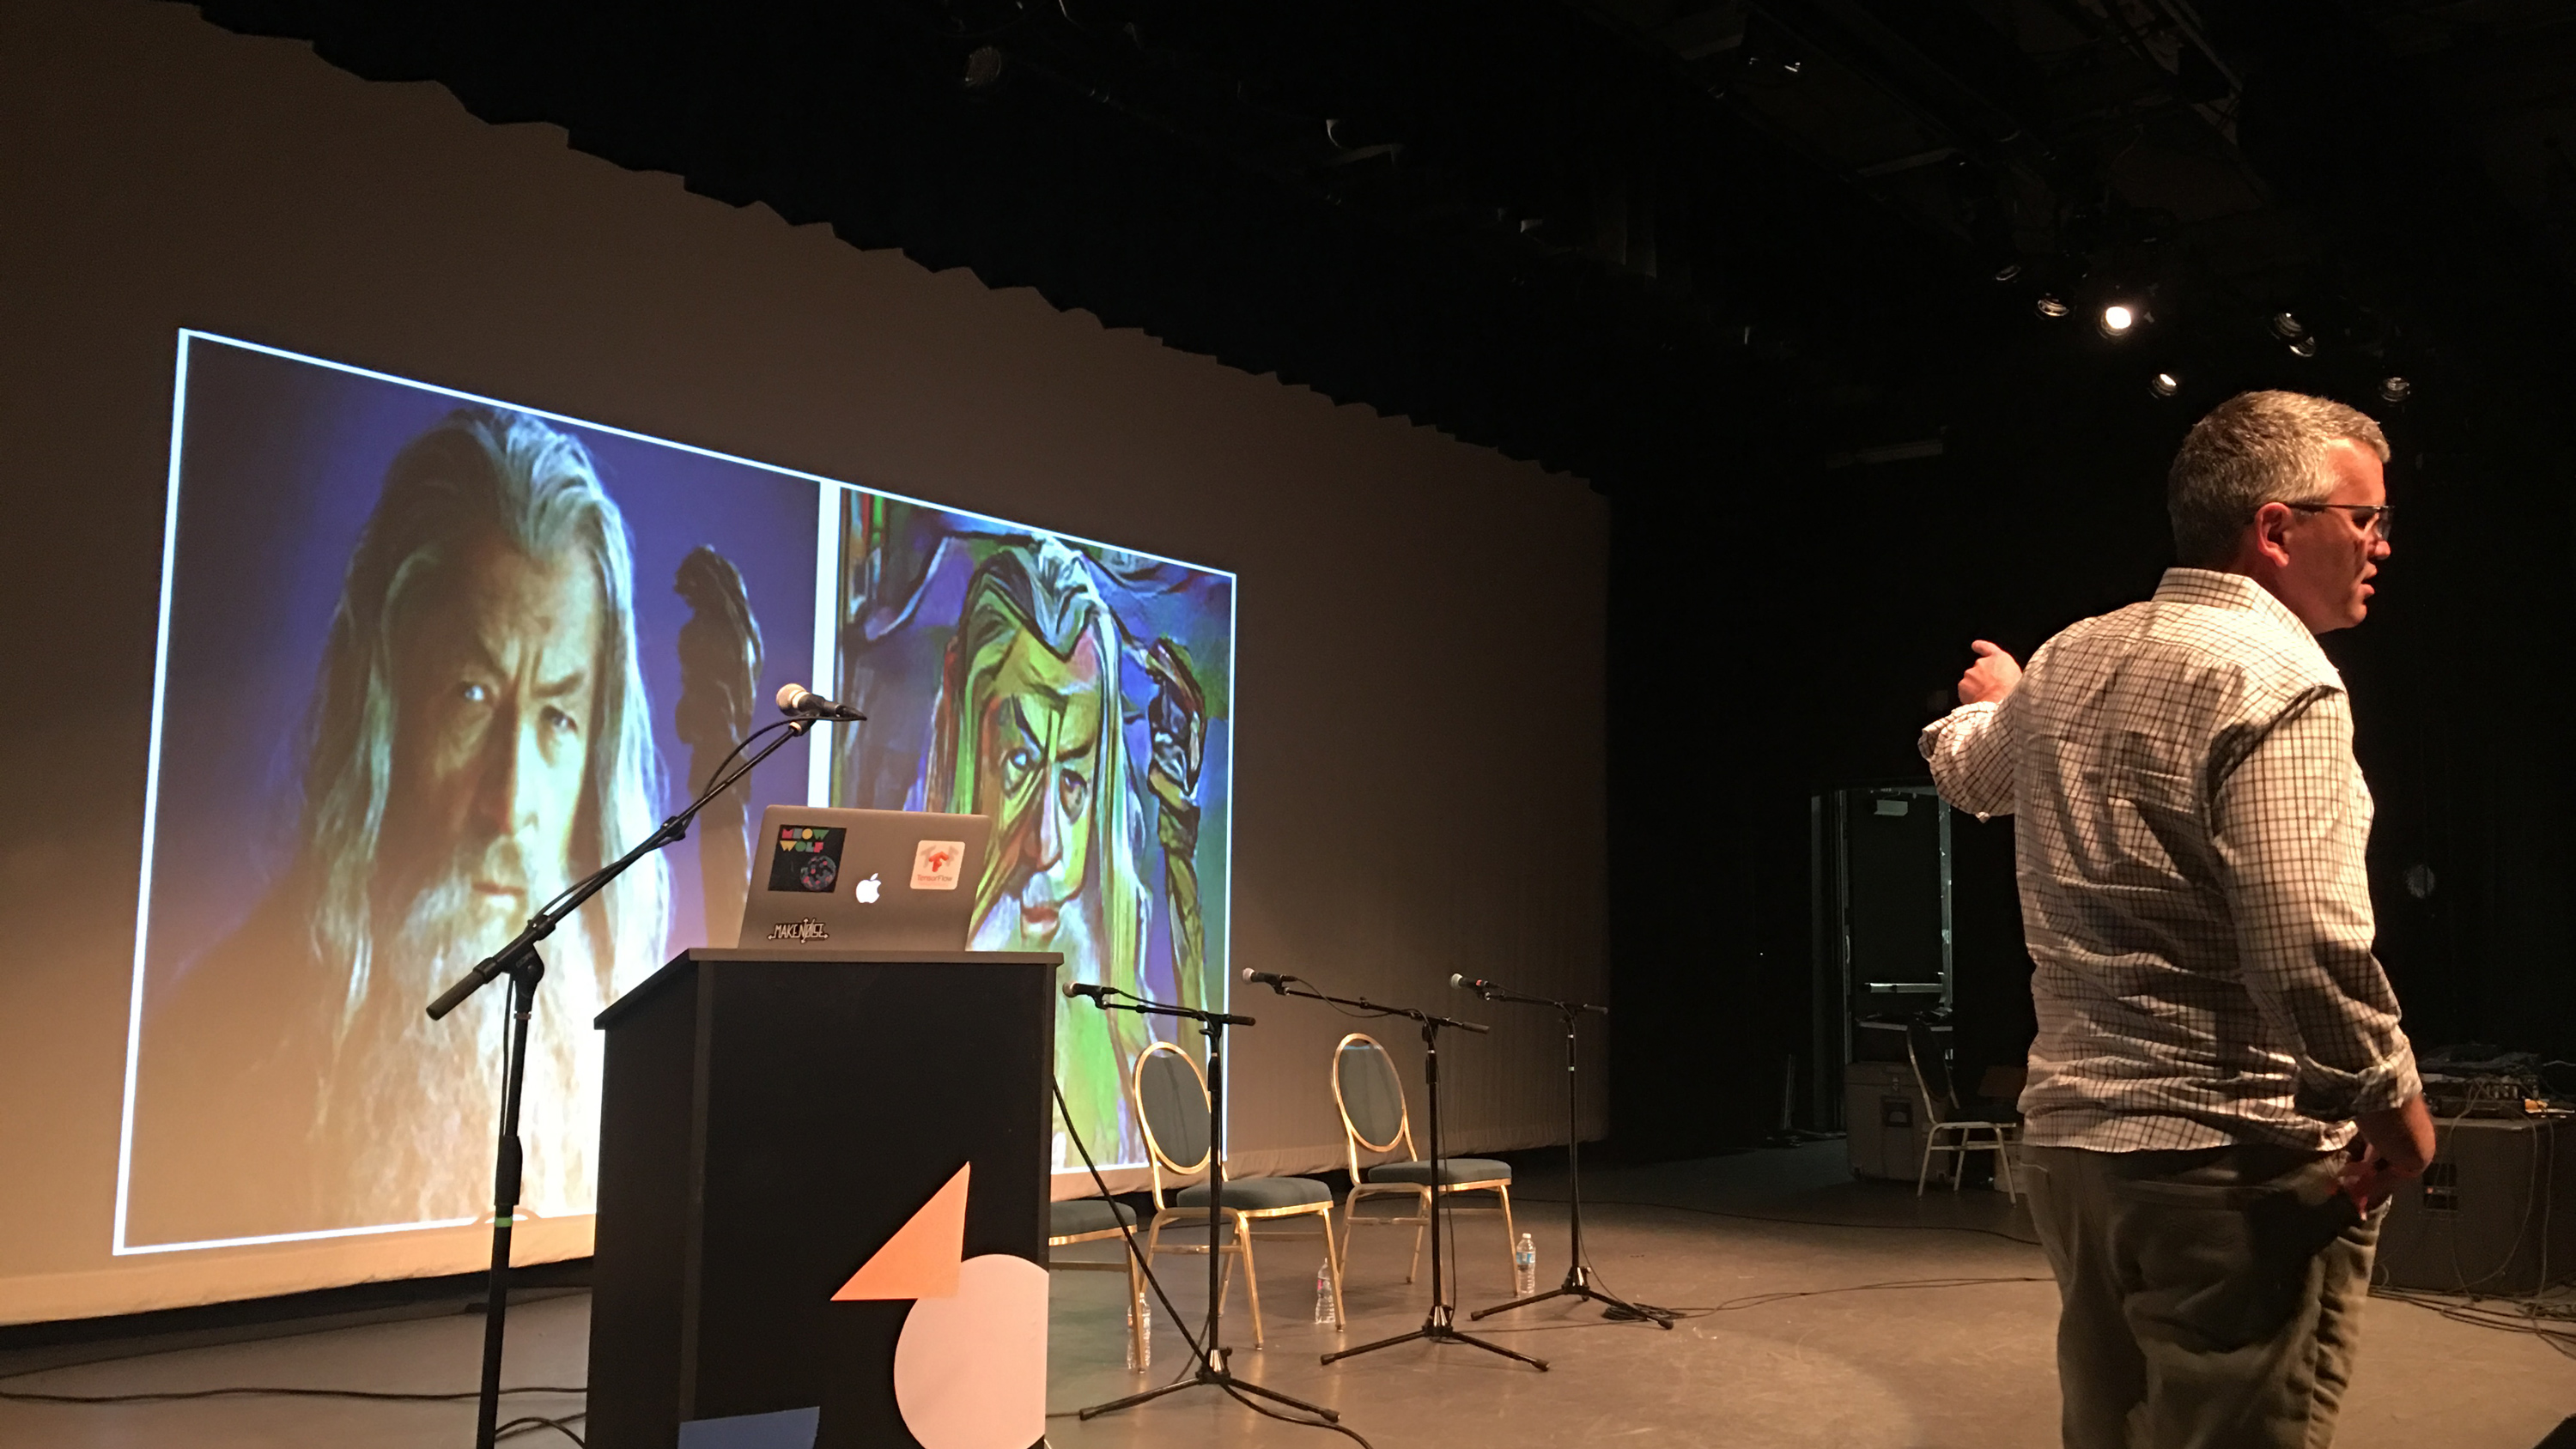 Google researcher Douglas Eck showing off an AI-generated image at Moogfest.